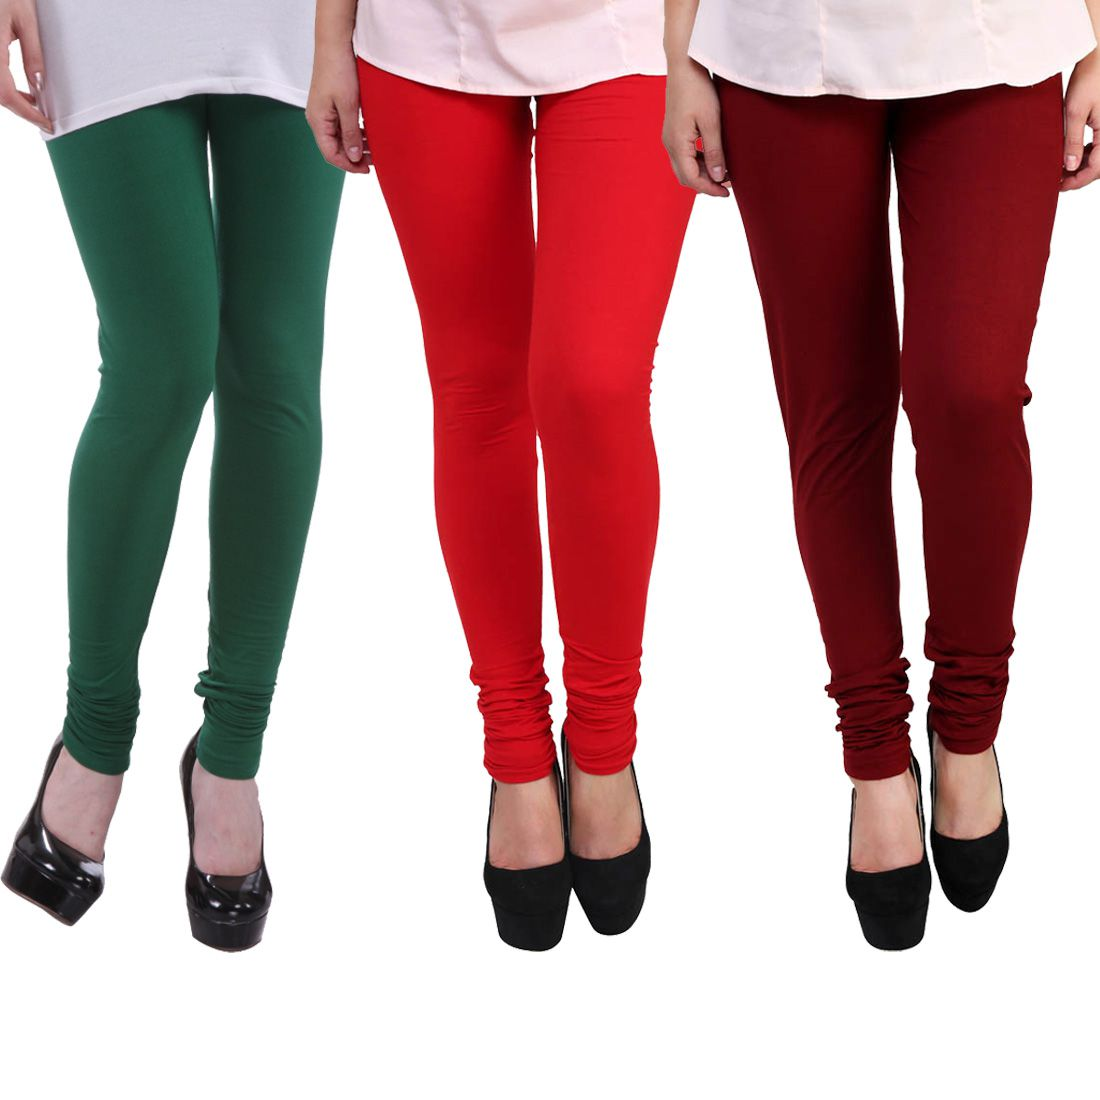 E'hiose Cotton Lycra Pack of 3 Leggings